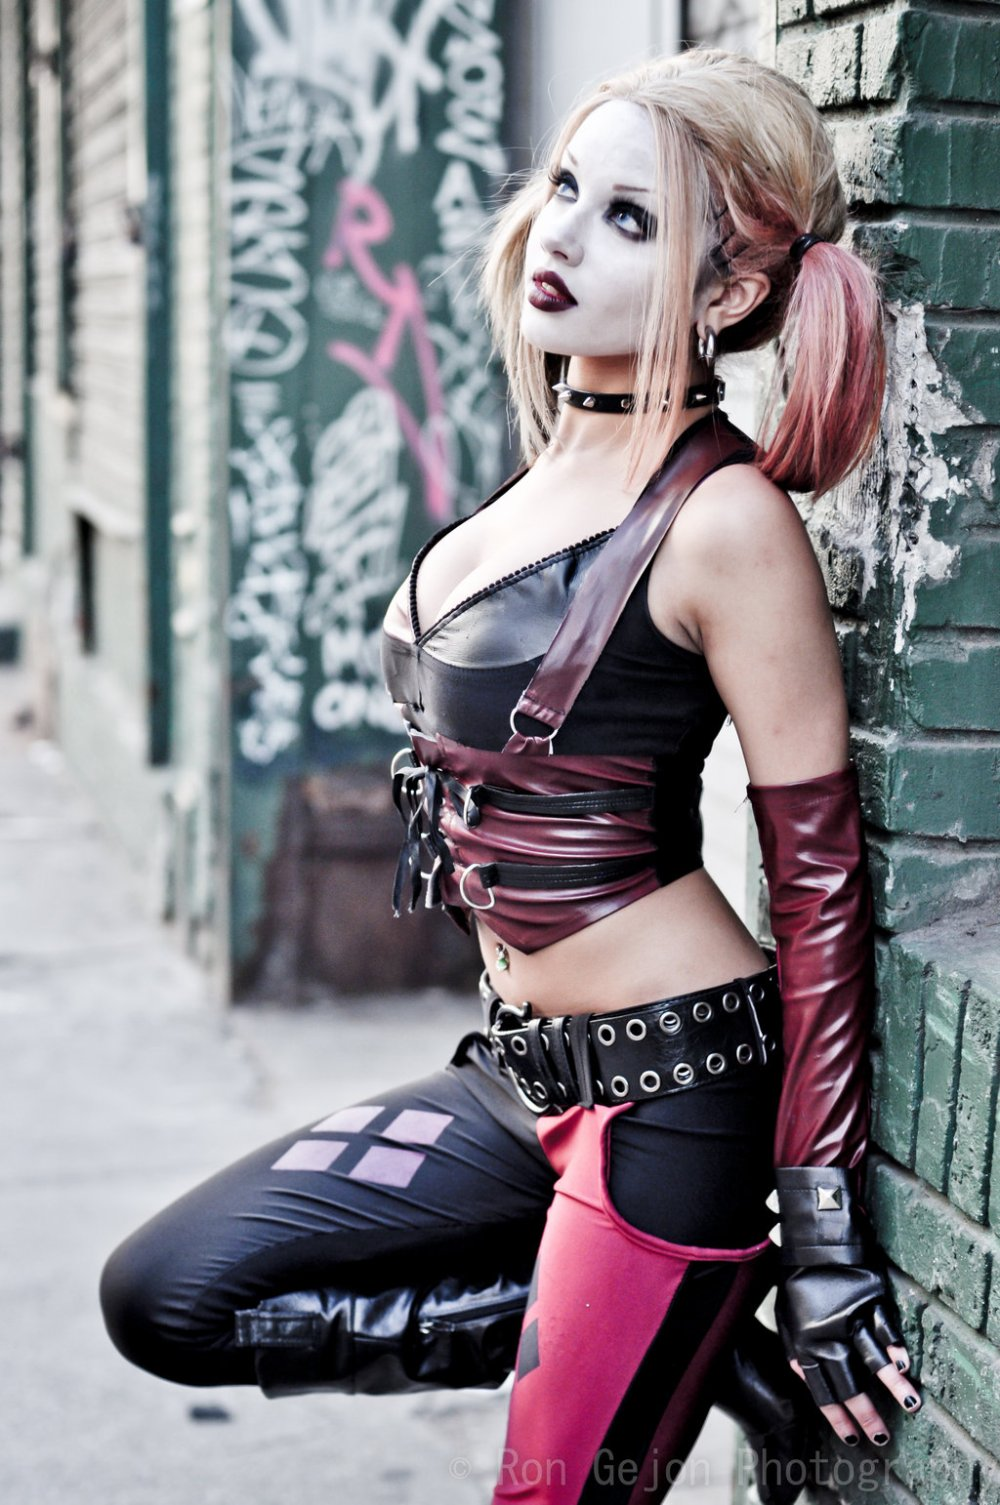 harley_quinn_cosplay_by_rongejon-d62mzf5